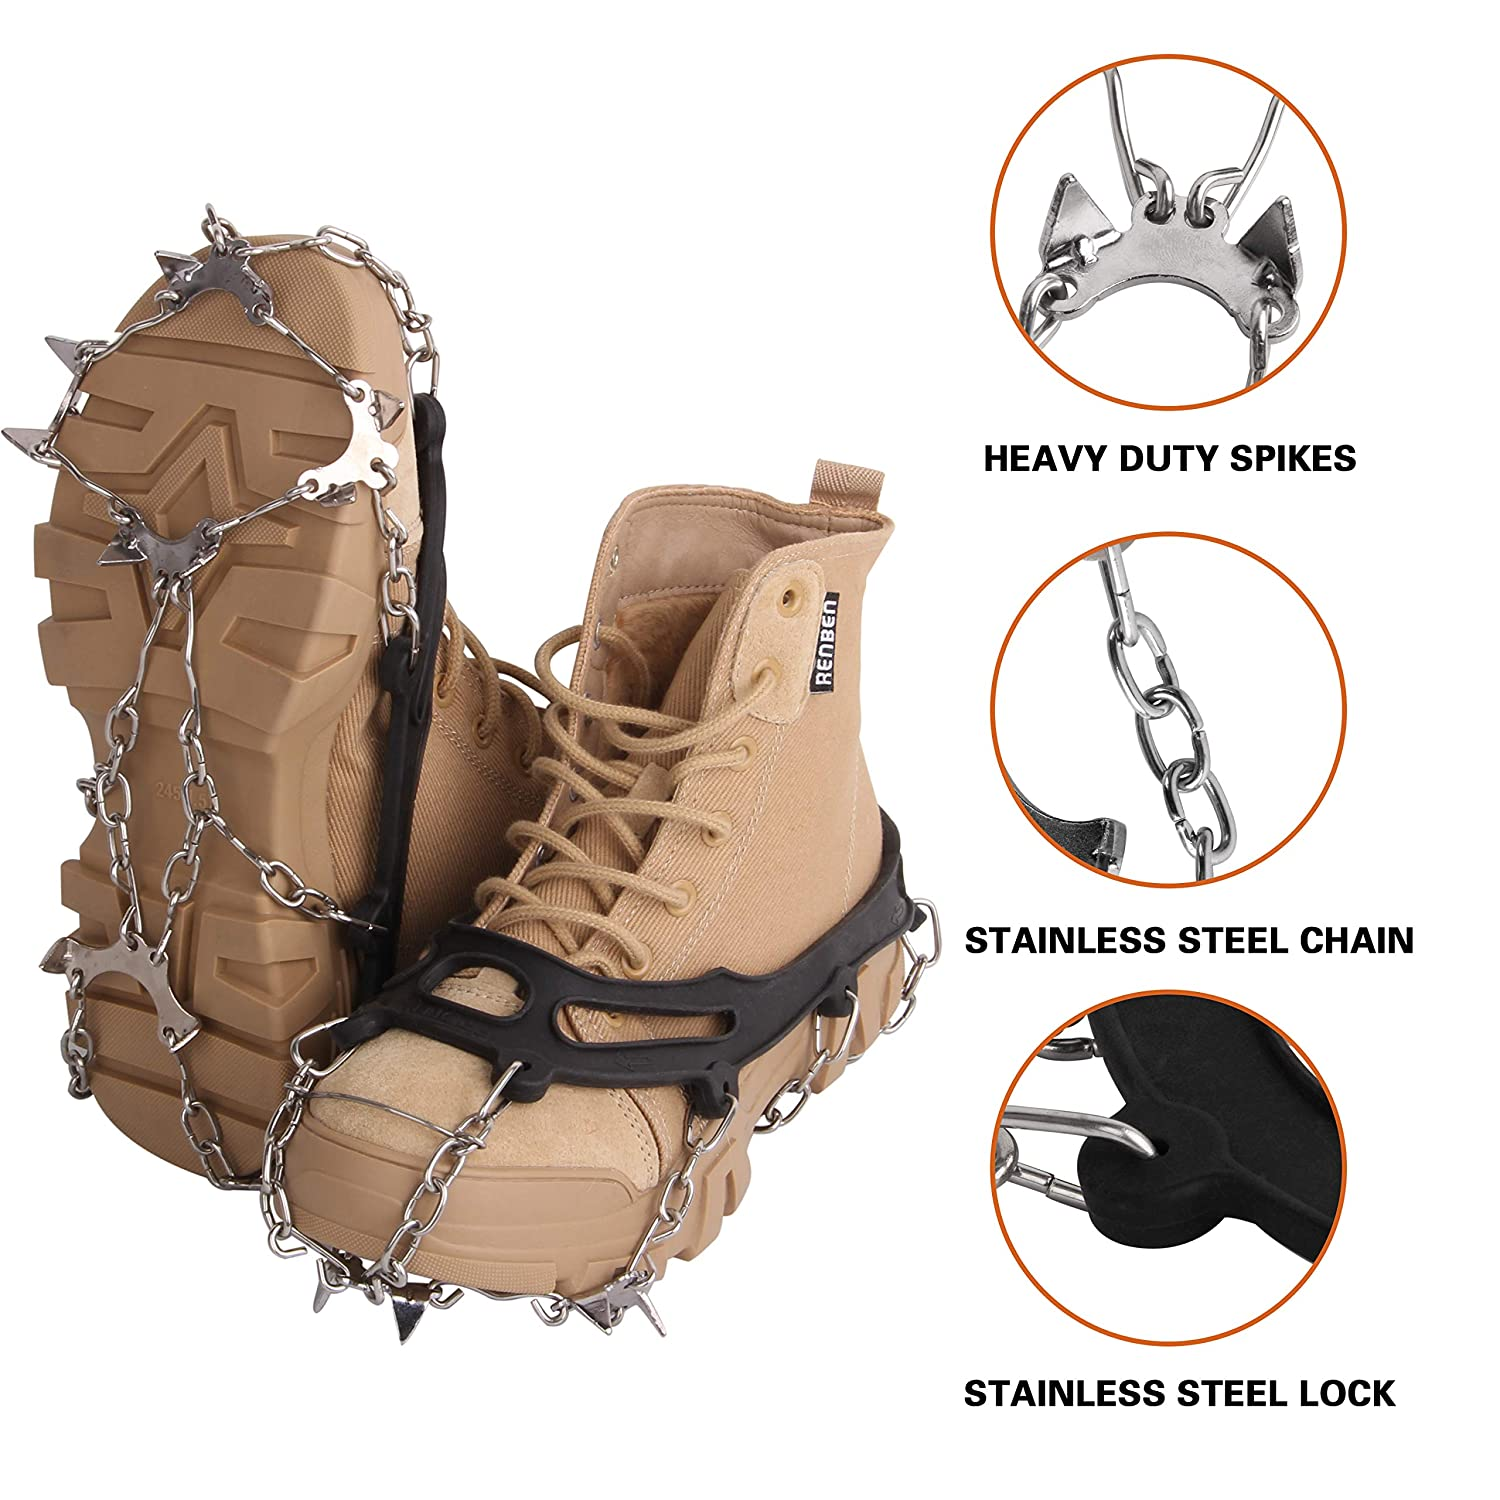 AGOOL Ice Cleat Walk Traction Spikes Crampons Ice Grips Snow Grip Stainless Steel Spikes Durable Silicone Stretch Footwear Anti-Slip for Walking Climbing and Outdoor Activities